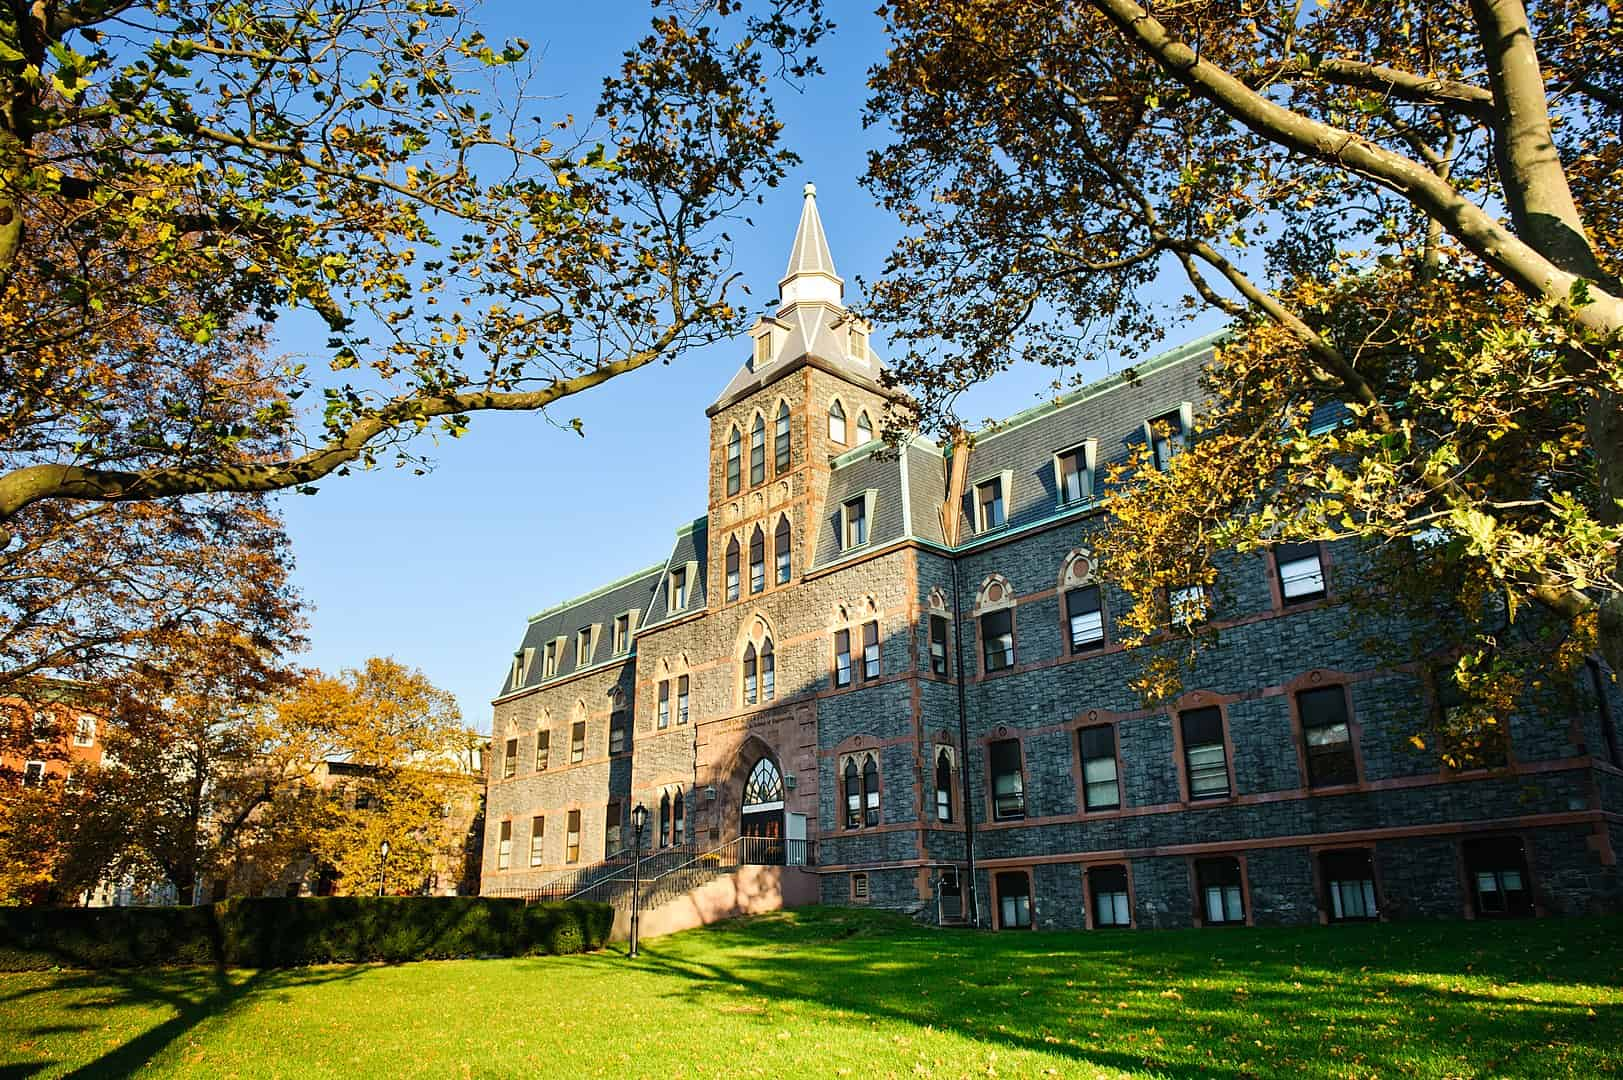 Best_Colleges_New_Jersey_Stevens_Institute_of_Technology